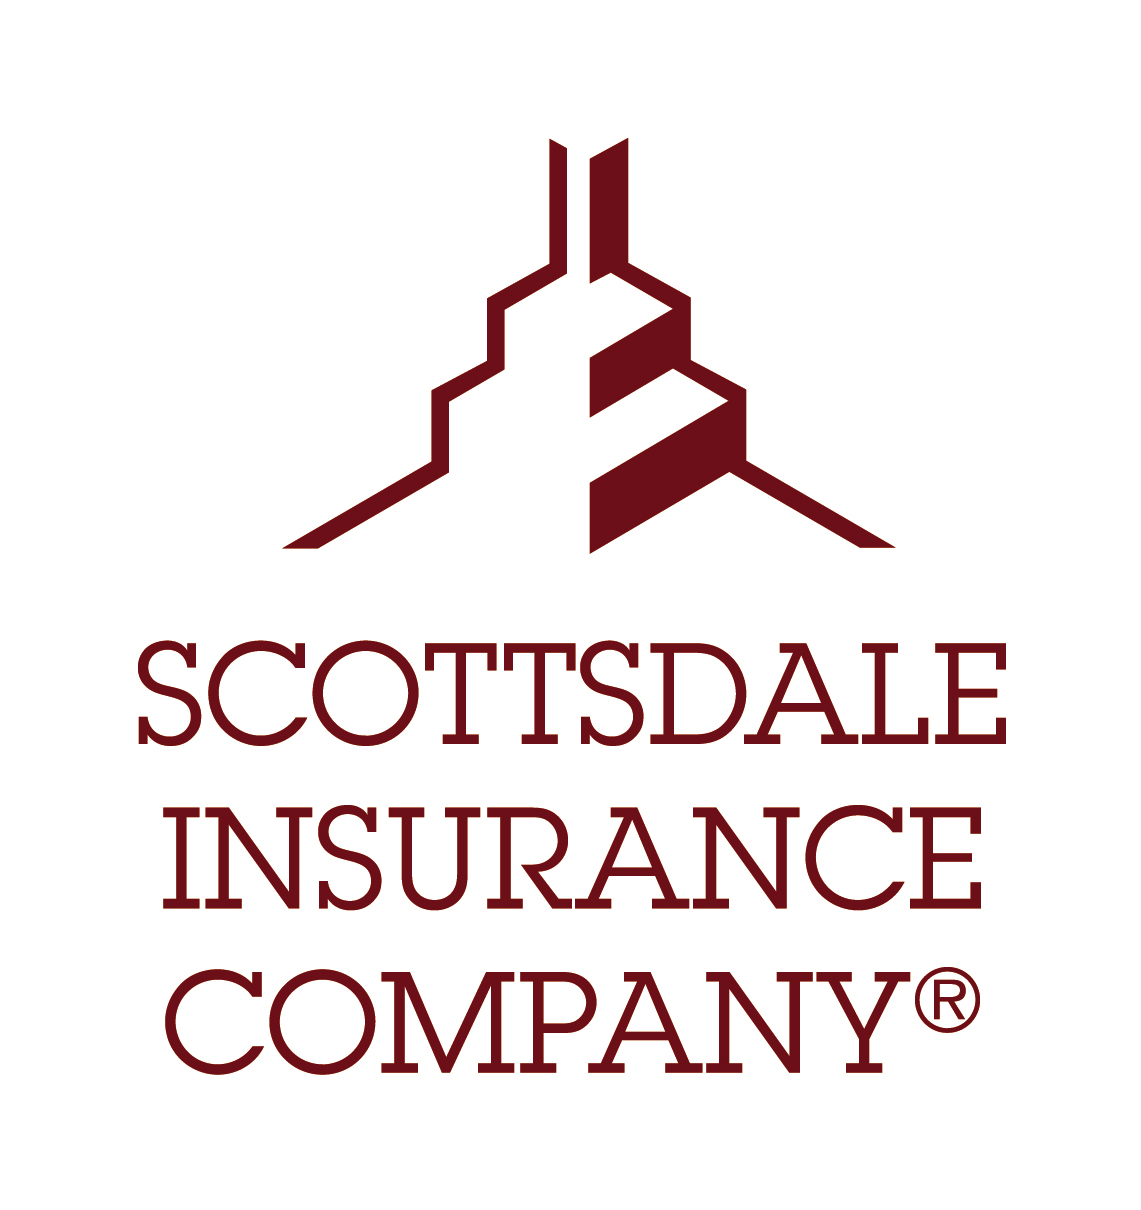 //www.christiancharlesinsurance.com/wp-content/uploads/2015/11/Scottsdale-Insurance.jpg